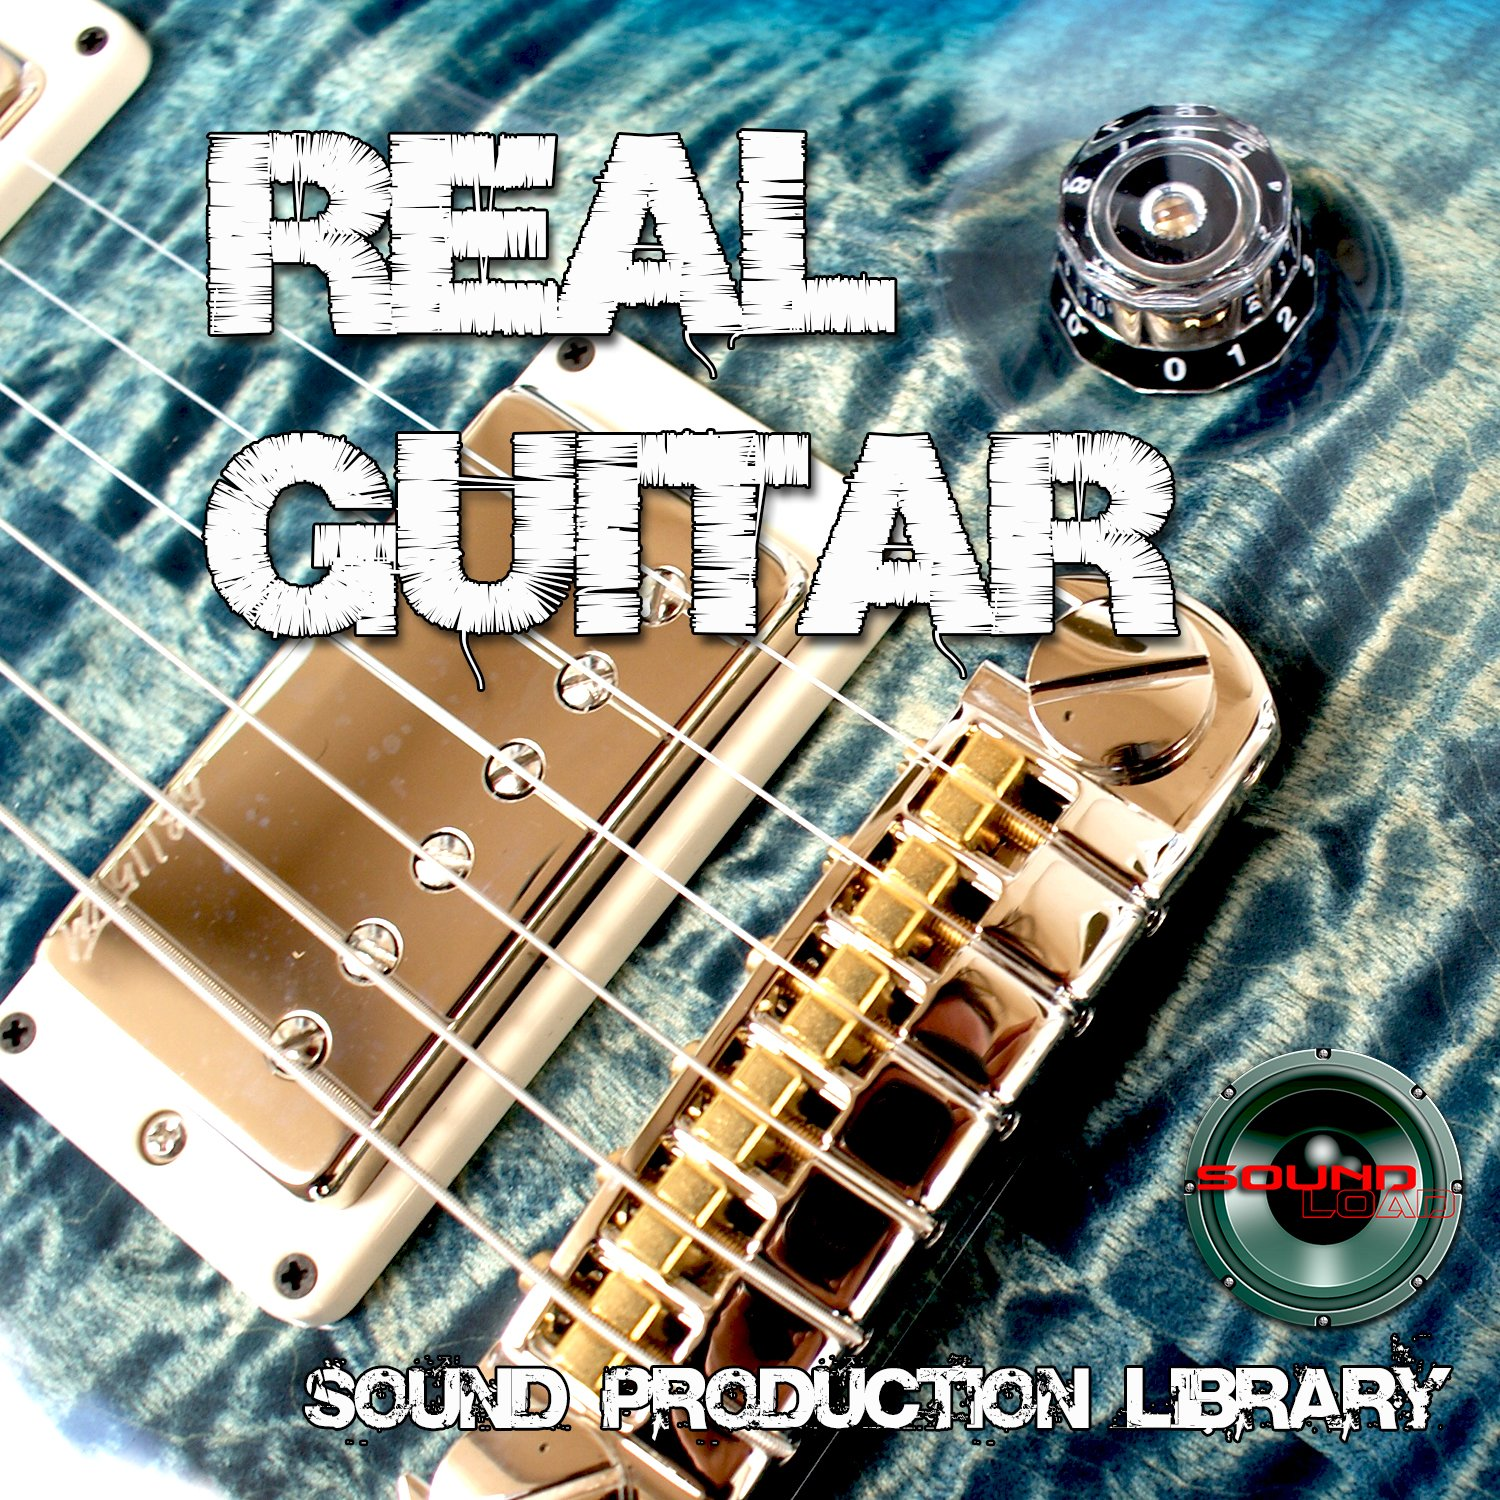 Electric Guitar Real - HUGE Unique Original 24bit Multy-Layer Samples/Loops/Grooves Library on DVD or download by SoundLoad